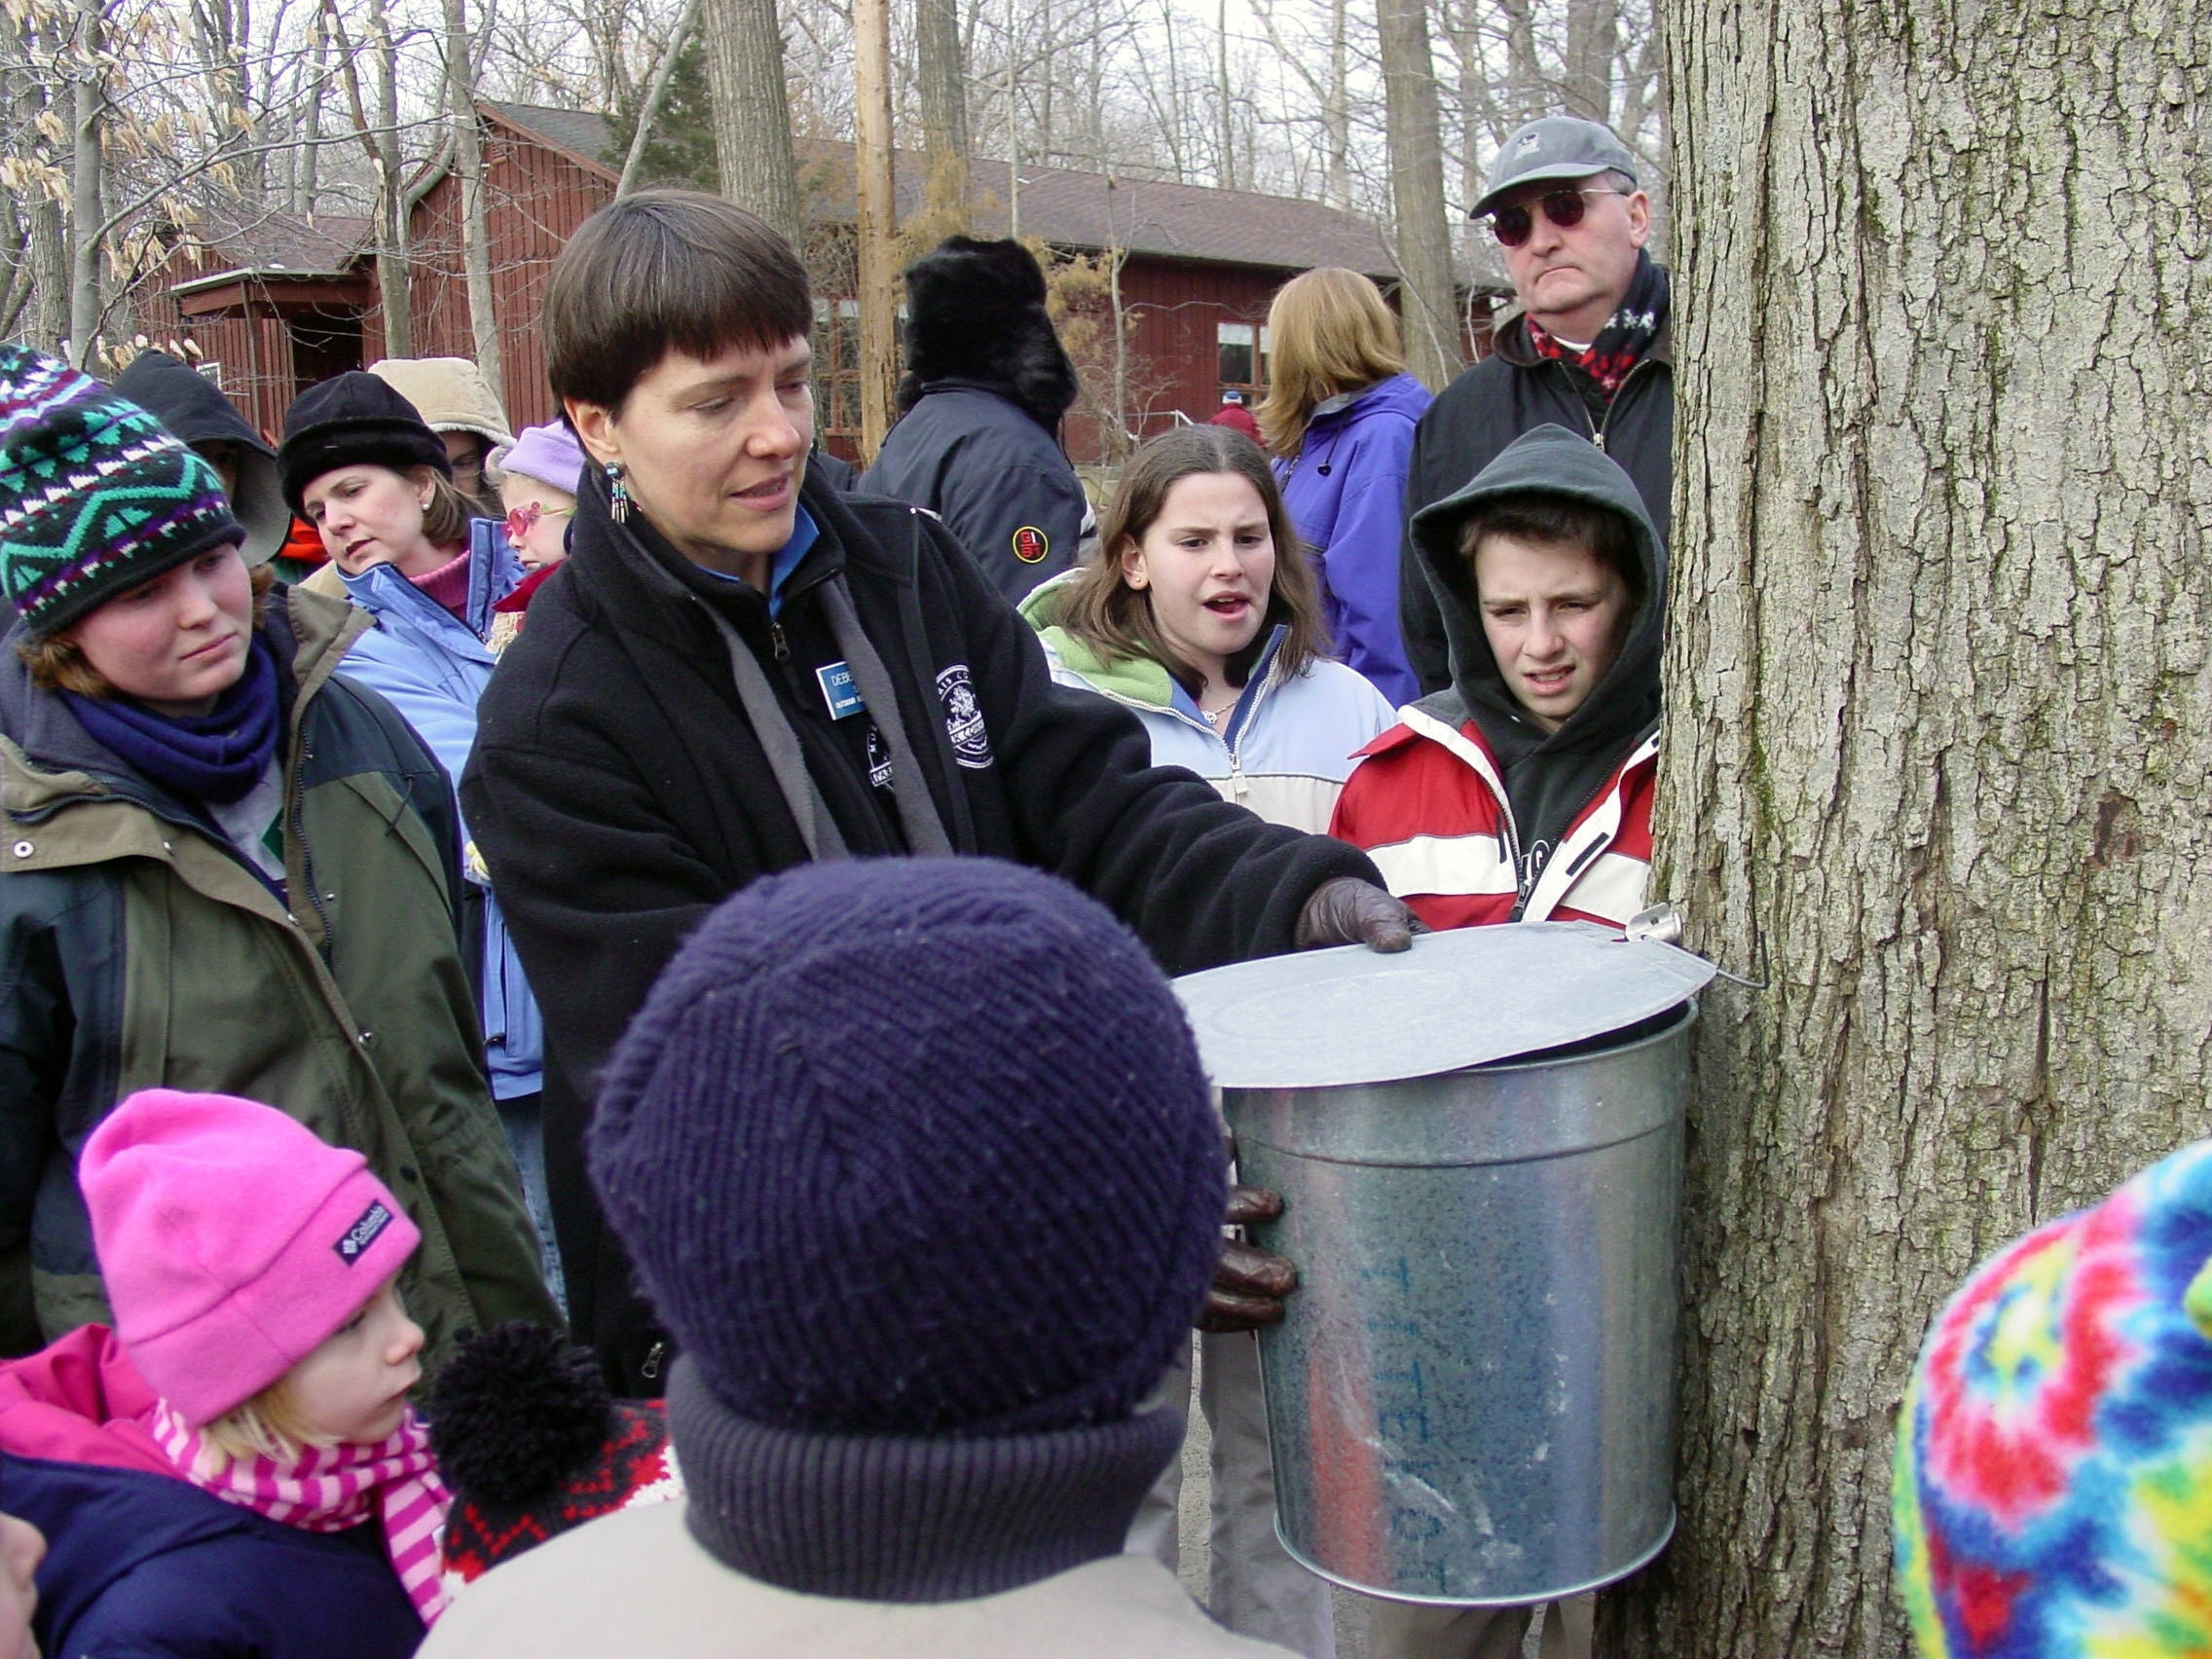 952a75a72d6d5c9332e6_GSOEC_Maple-Sugaring_Crowd-Looks-On_161209_115553.JPG